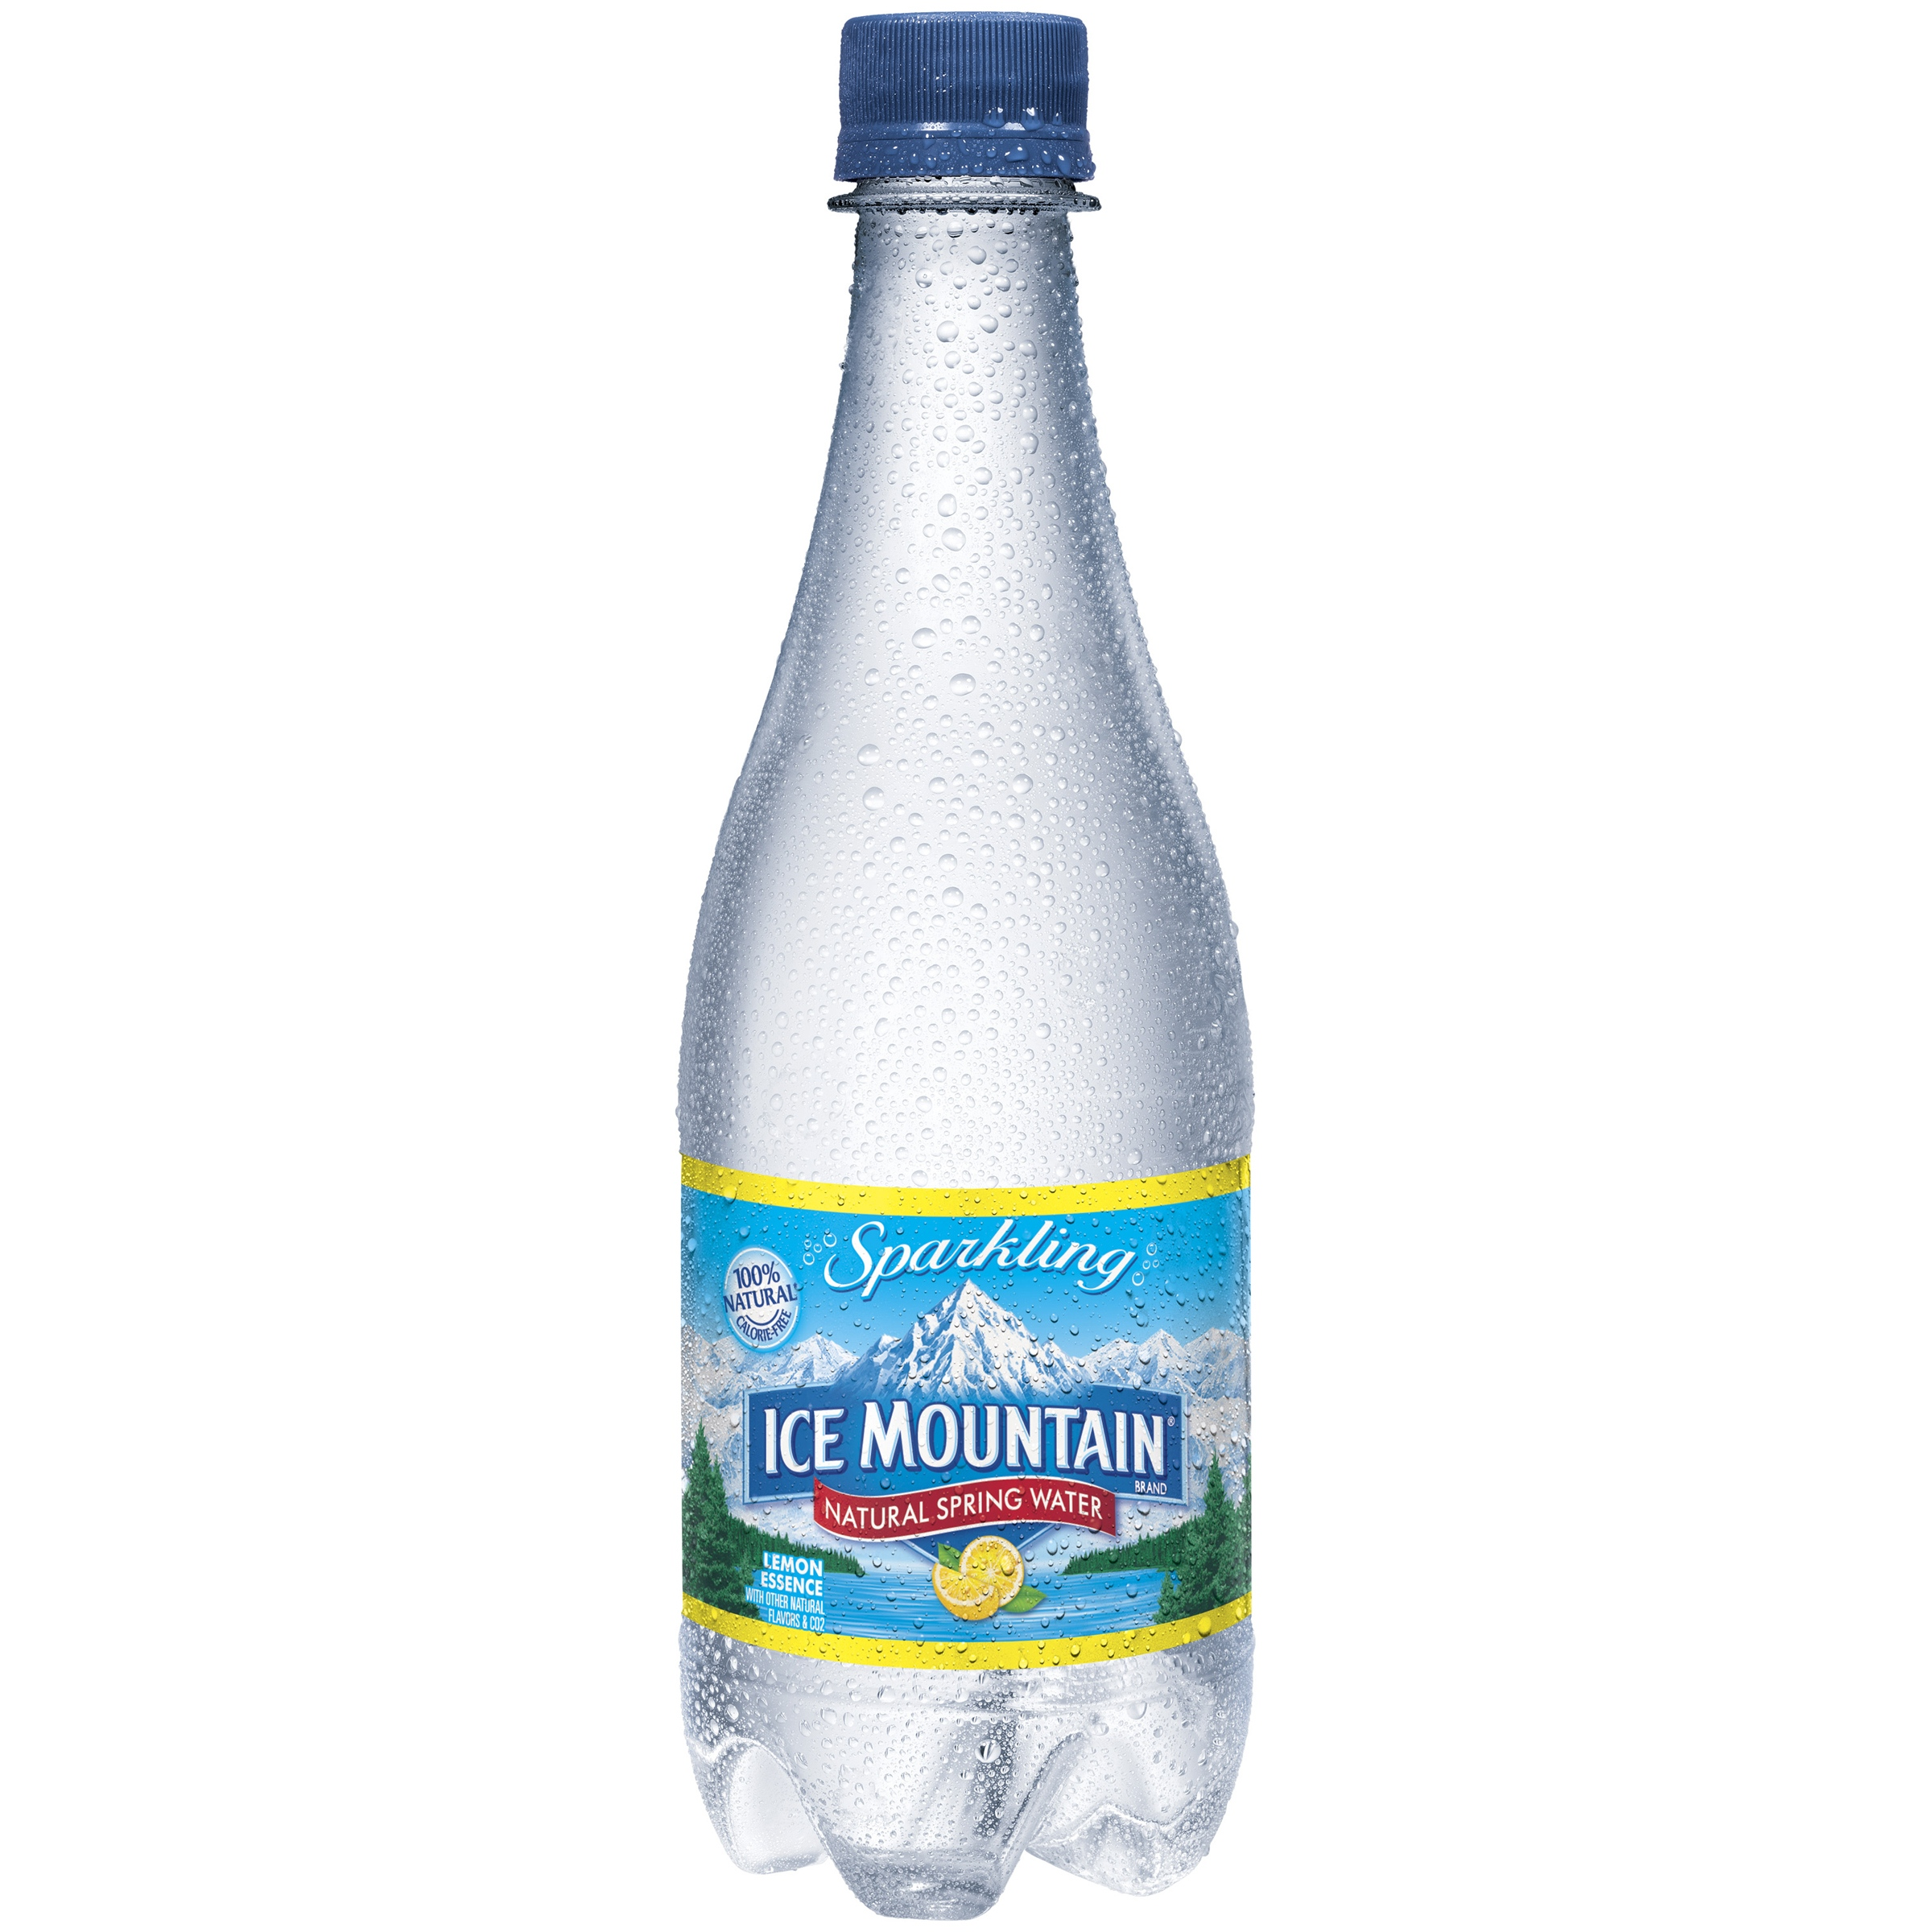 Ice Mountain Sparkling Natural Spring Water Lemon Essence 0.5L Plastic Bottle by Nestle Waters of North America